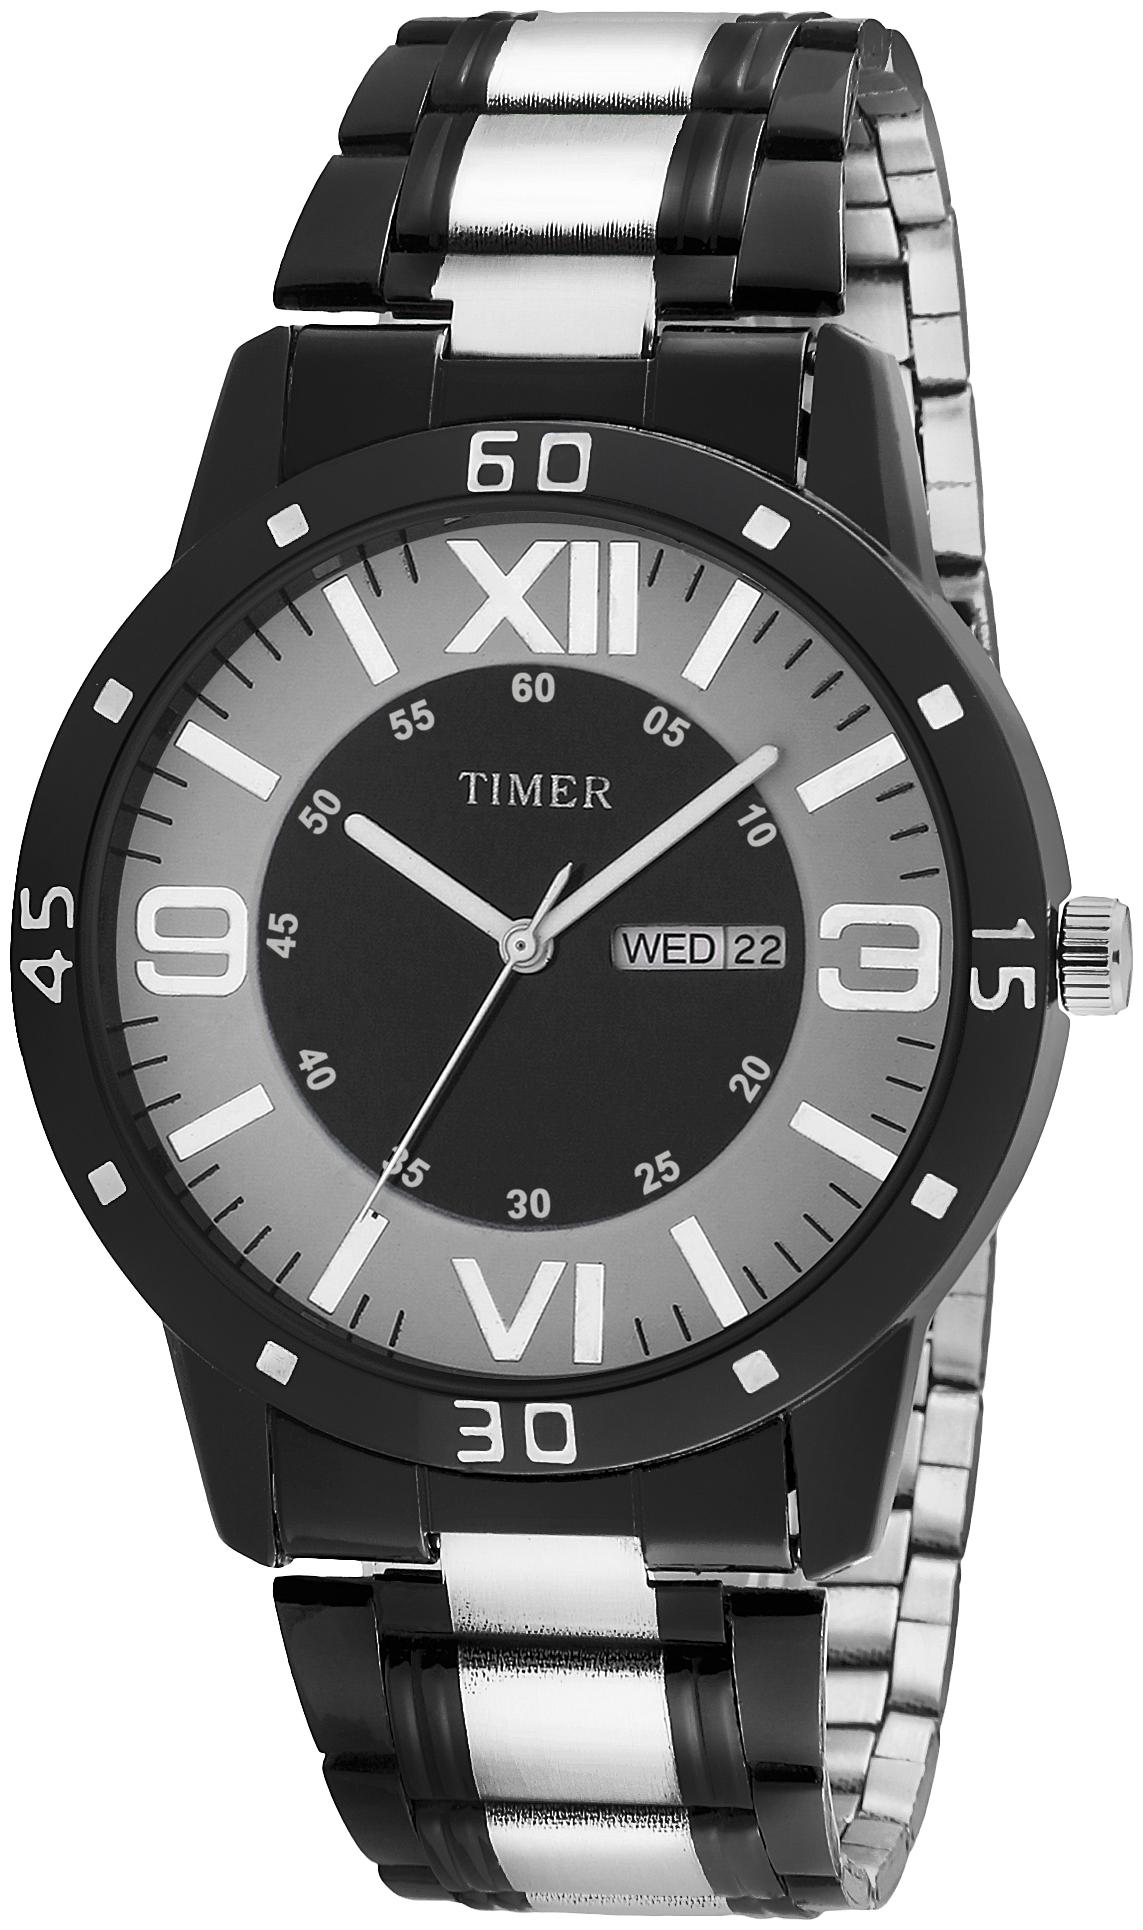 TC BP 004 TIMER DAY AND DATE STAINLESS STEEL ANALOG WATCH   NEW RANGE FOR ALL GENERATIONS Analog Watch   For Men